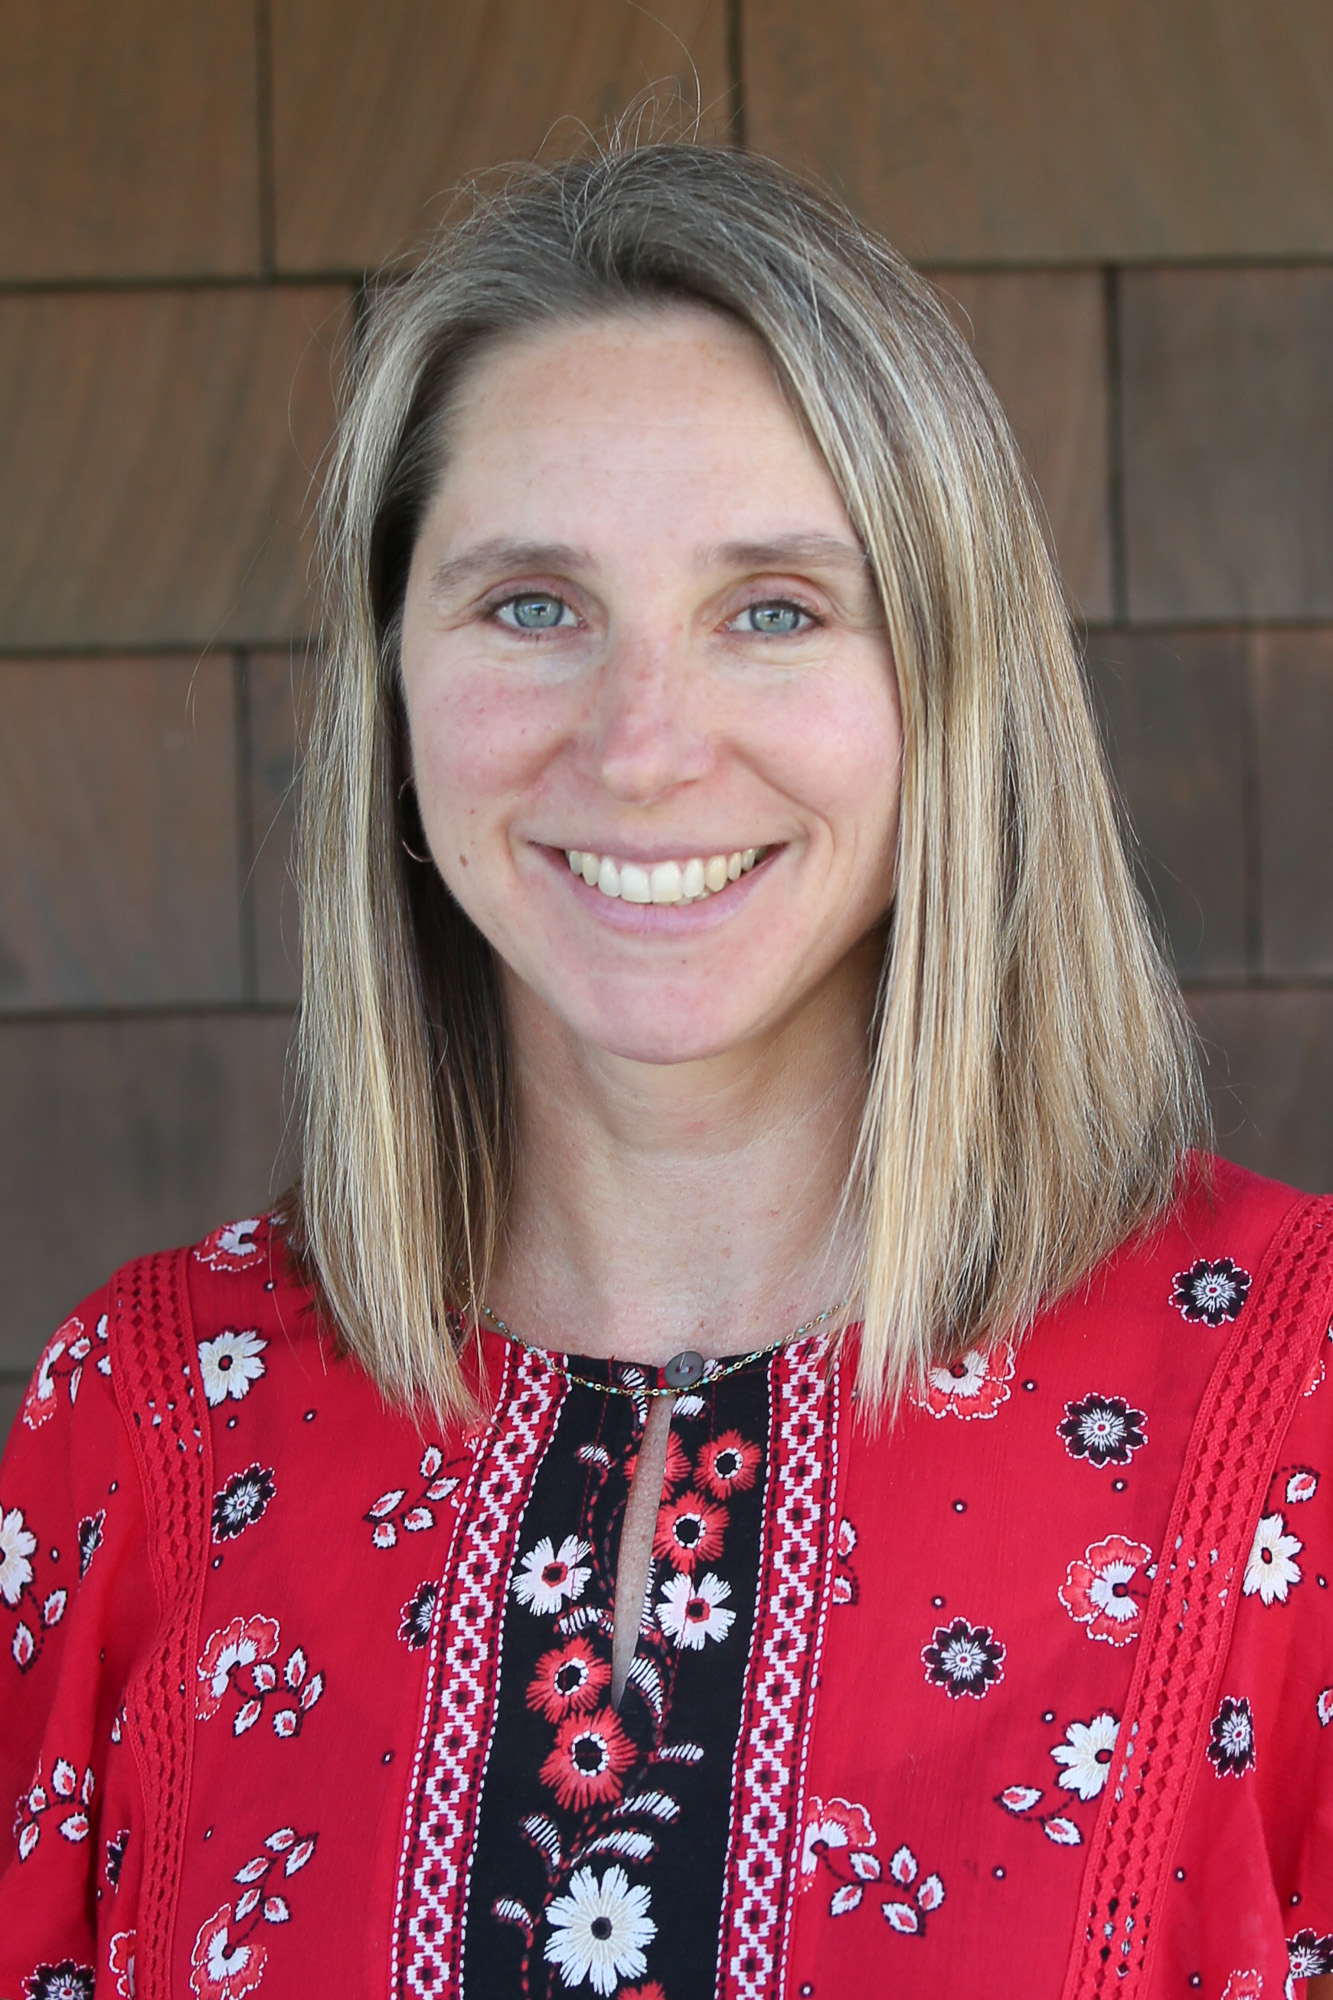 Heather Brubaker, Communications, 3 years at MTS